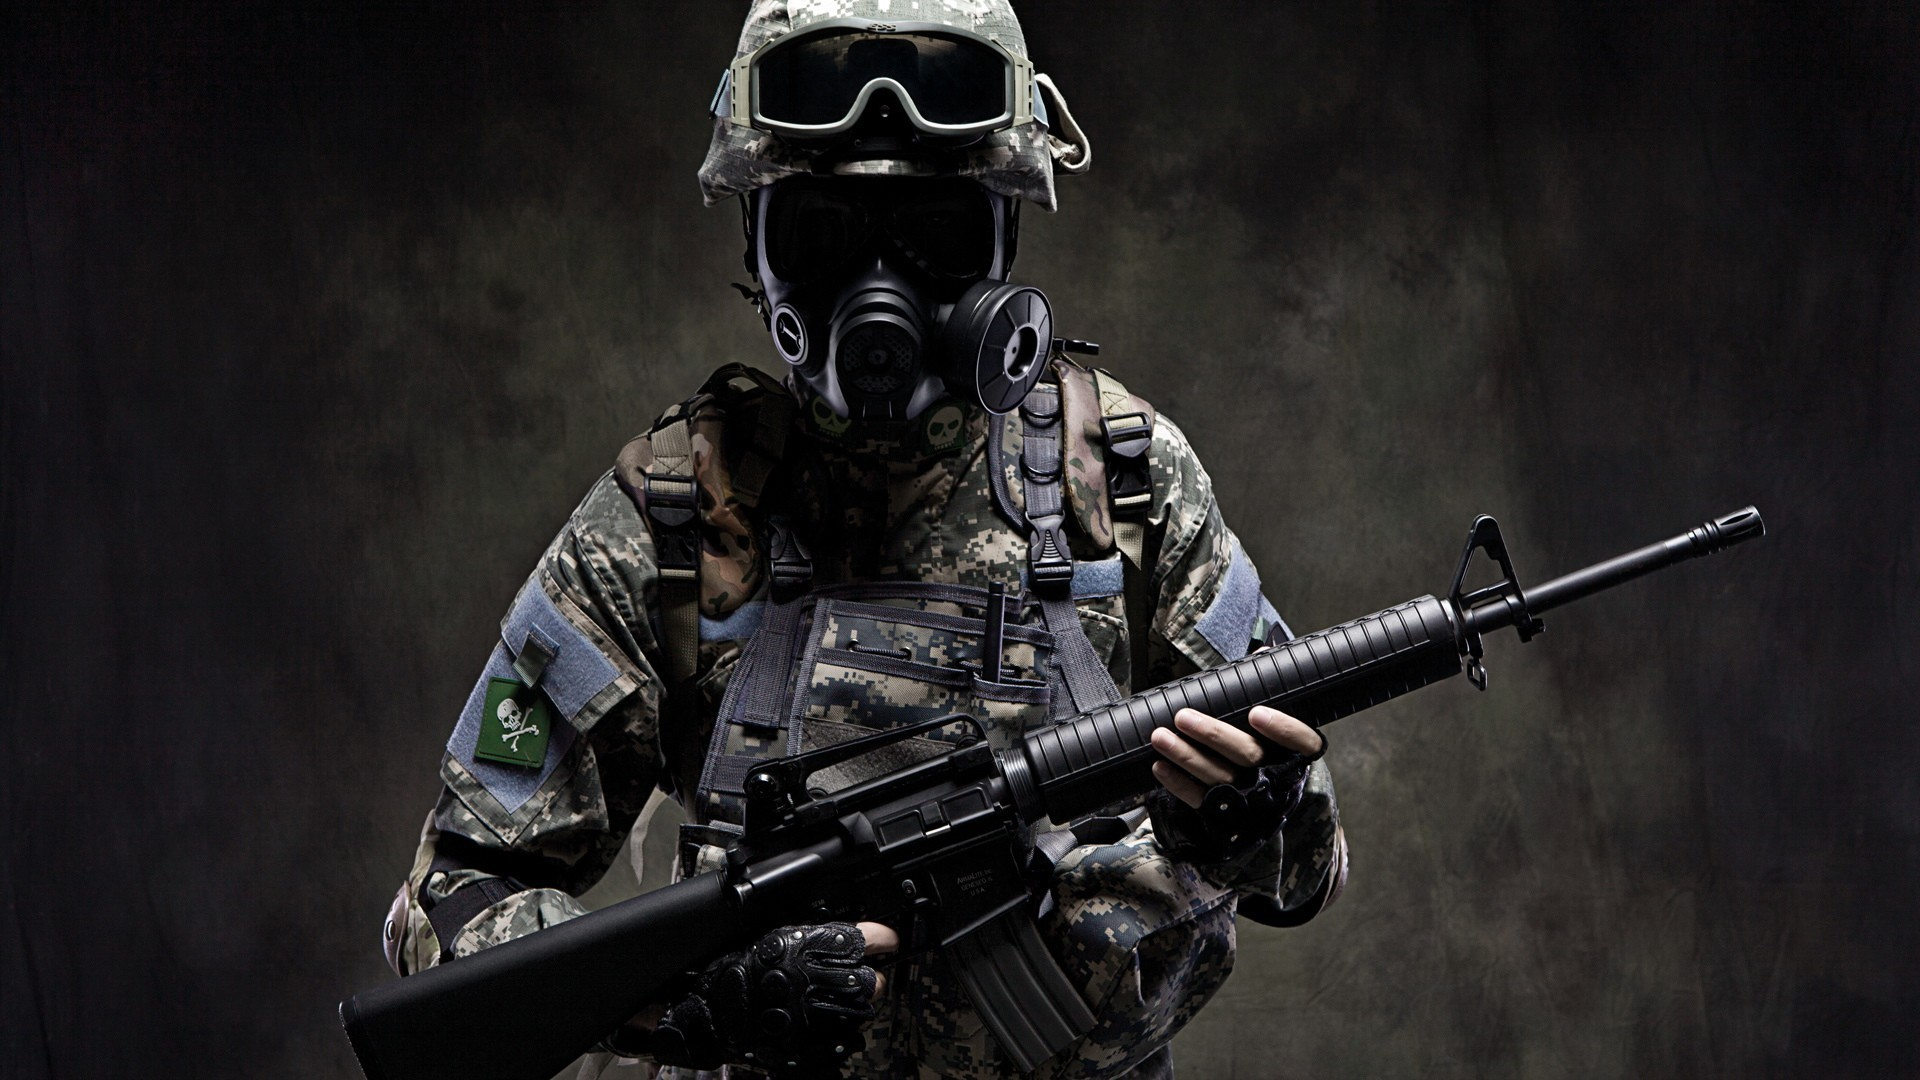 Army Wallpapers   Wallpaper High Definition High Quality 1920x1080